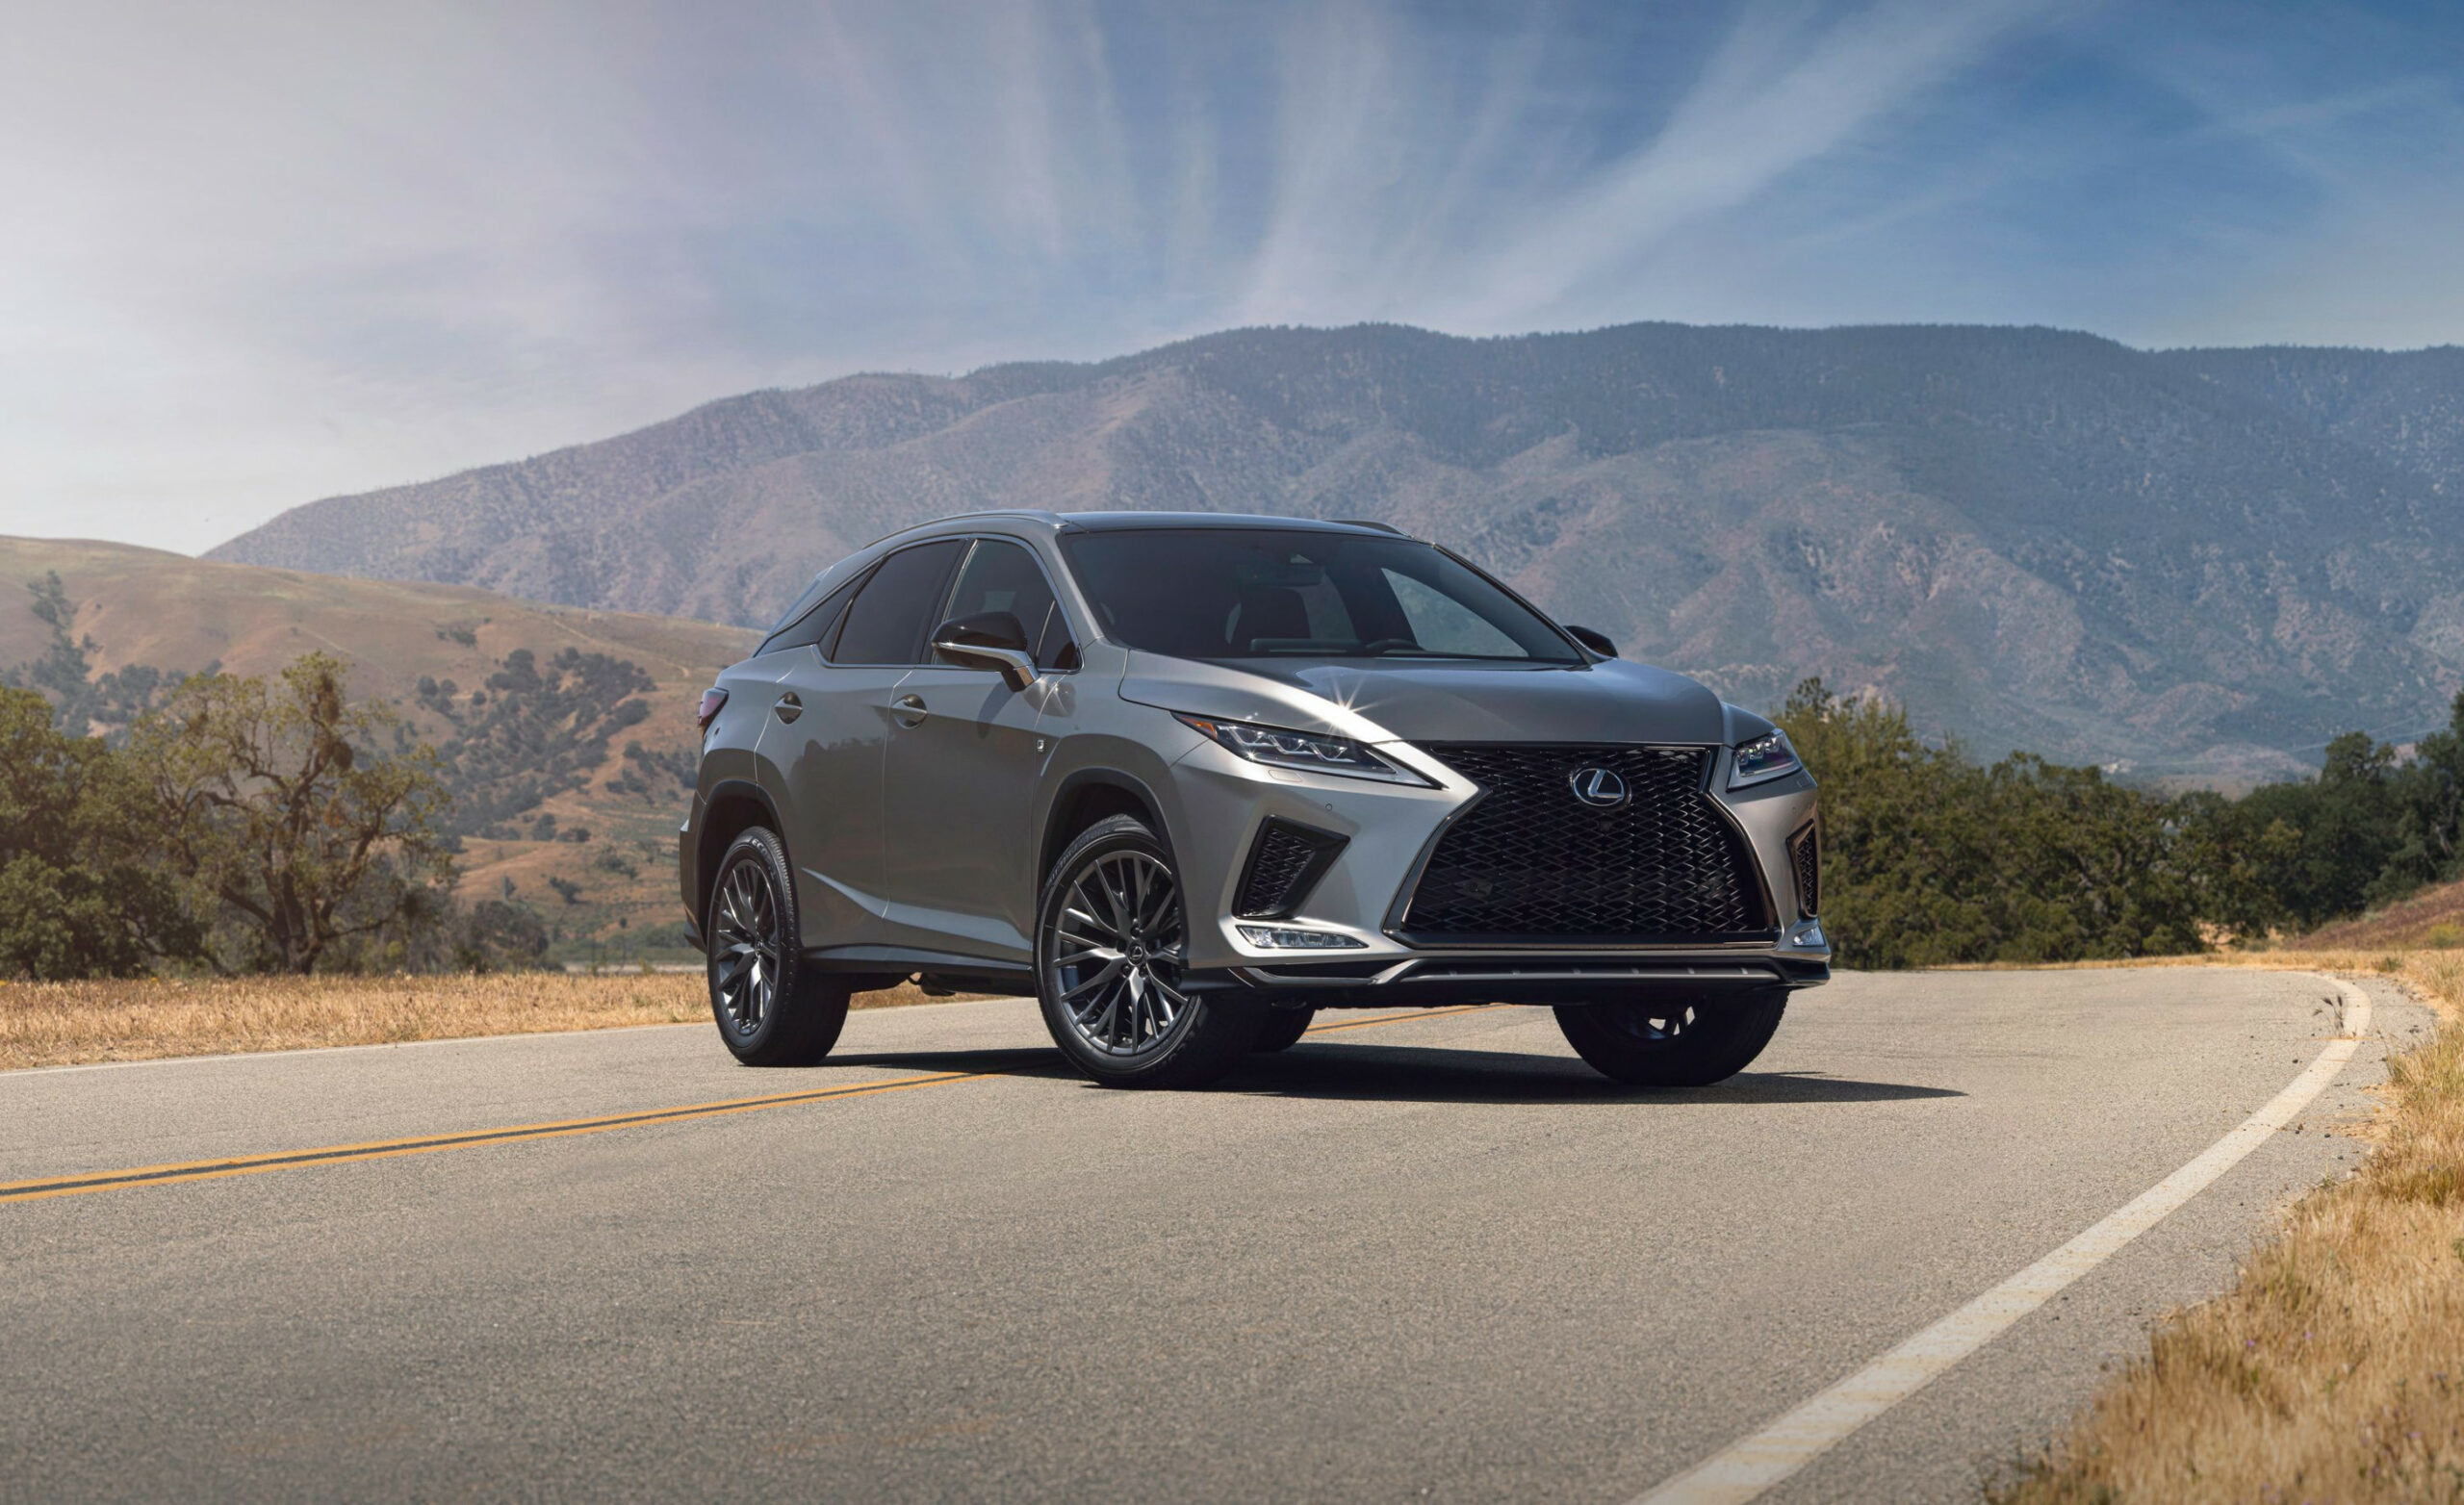 7 Lexus RX7 and RX7h - Details of Updated Models